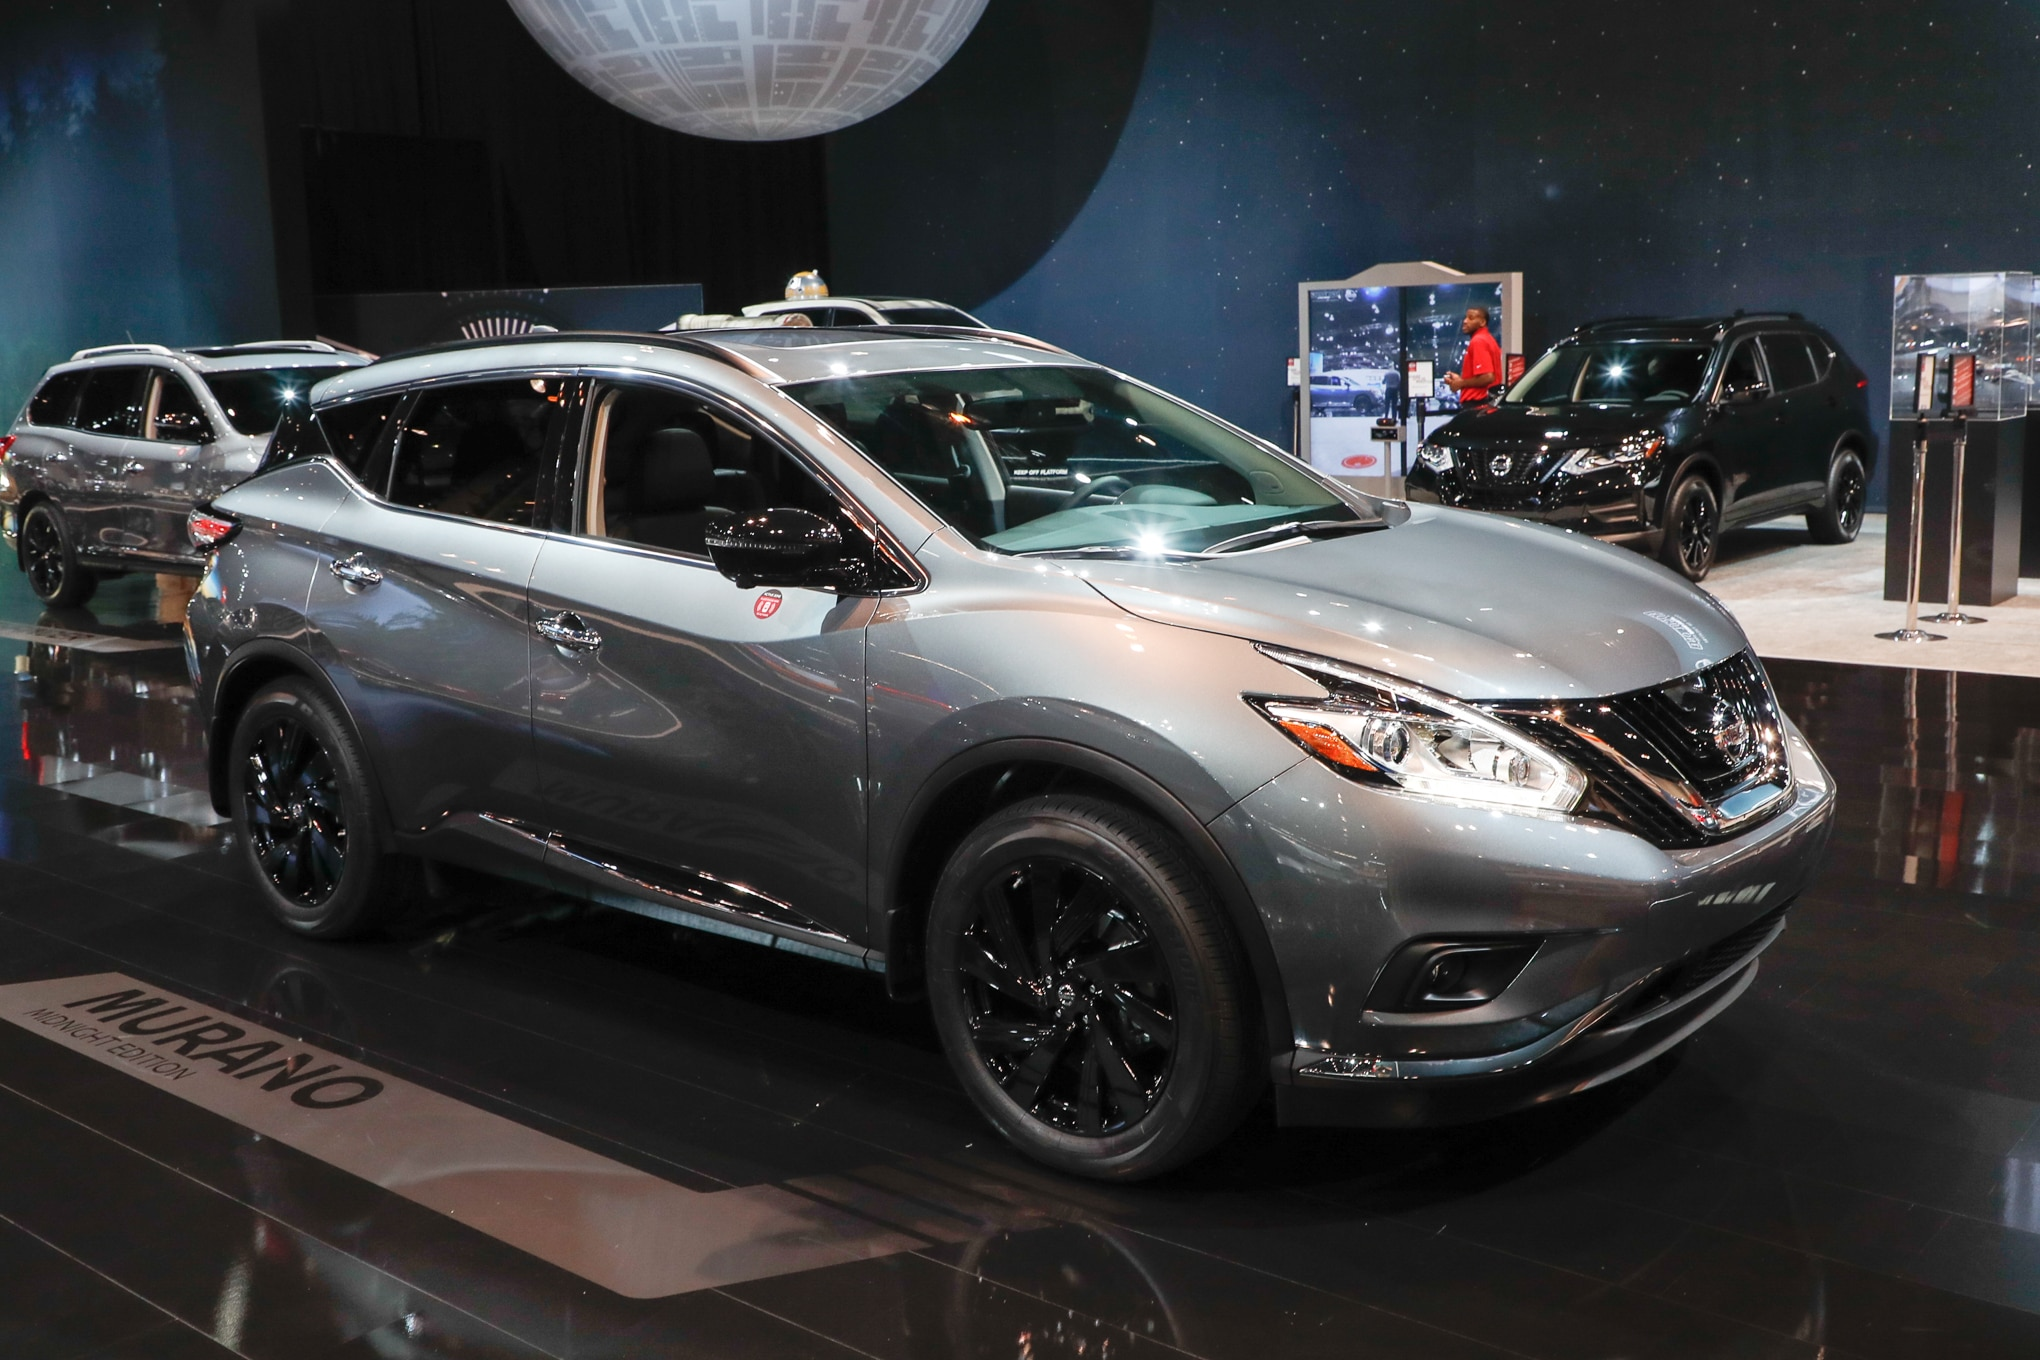 2017 Nissan Murano Price Unveiled, Starts at $30,710 ...